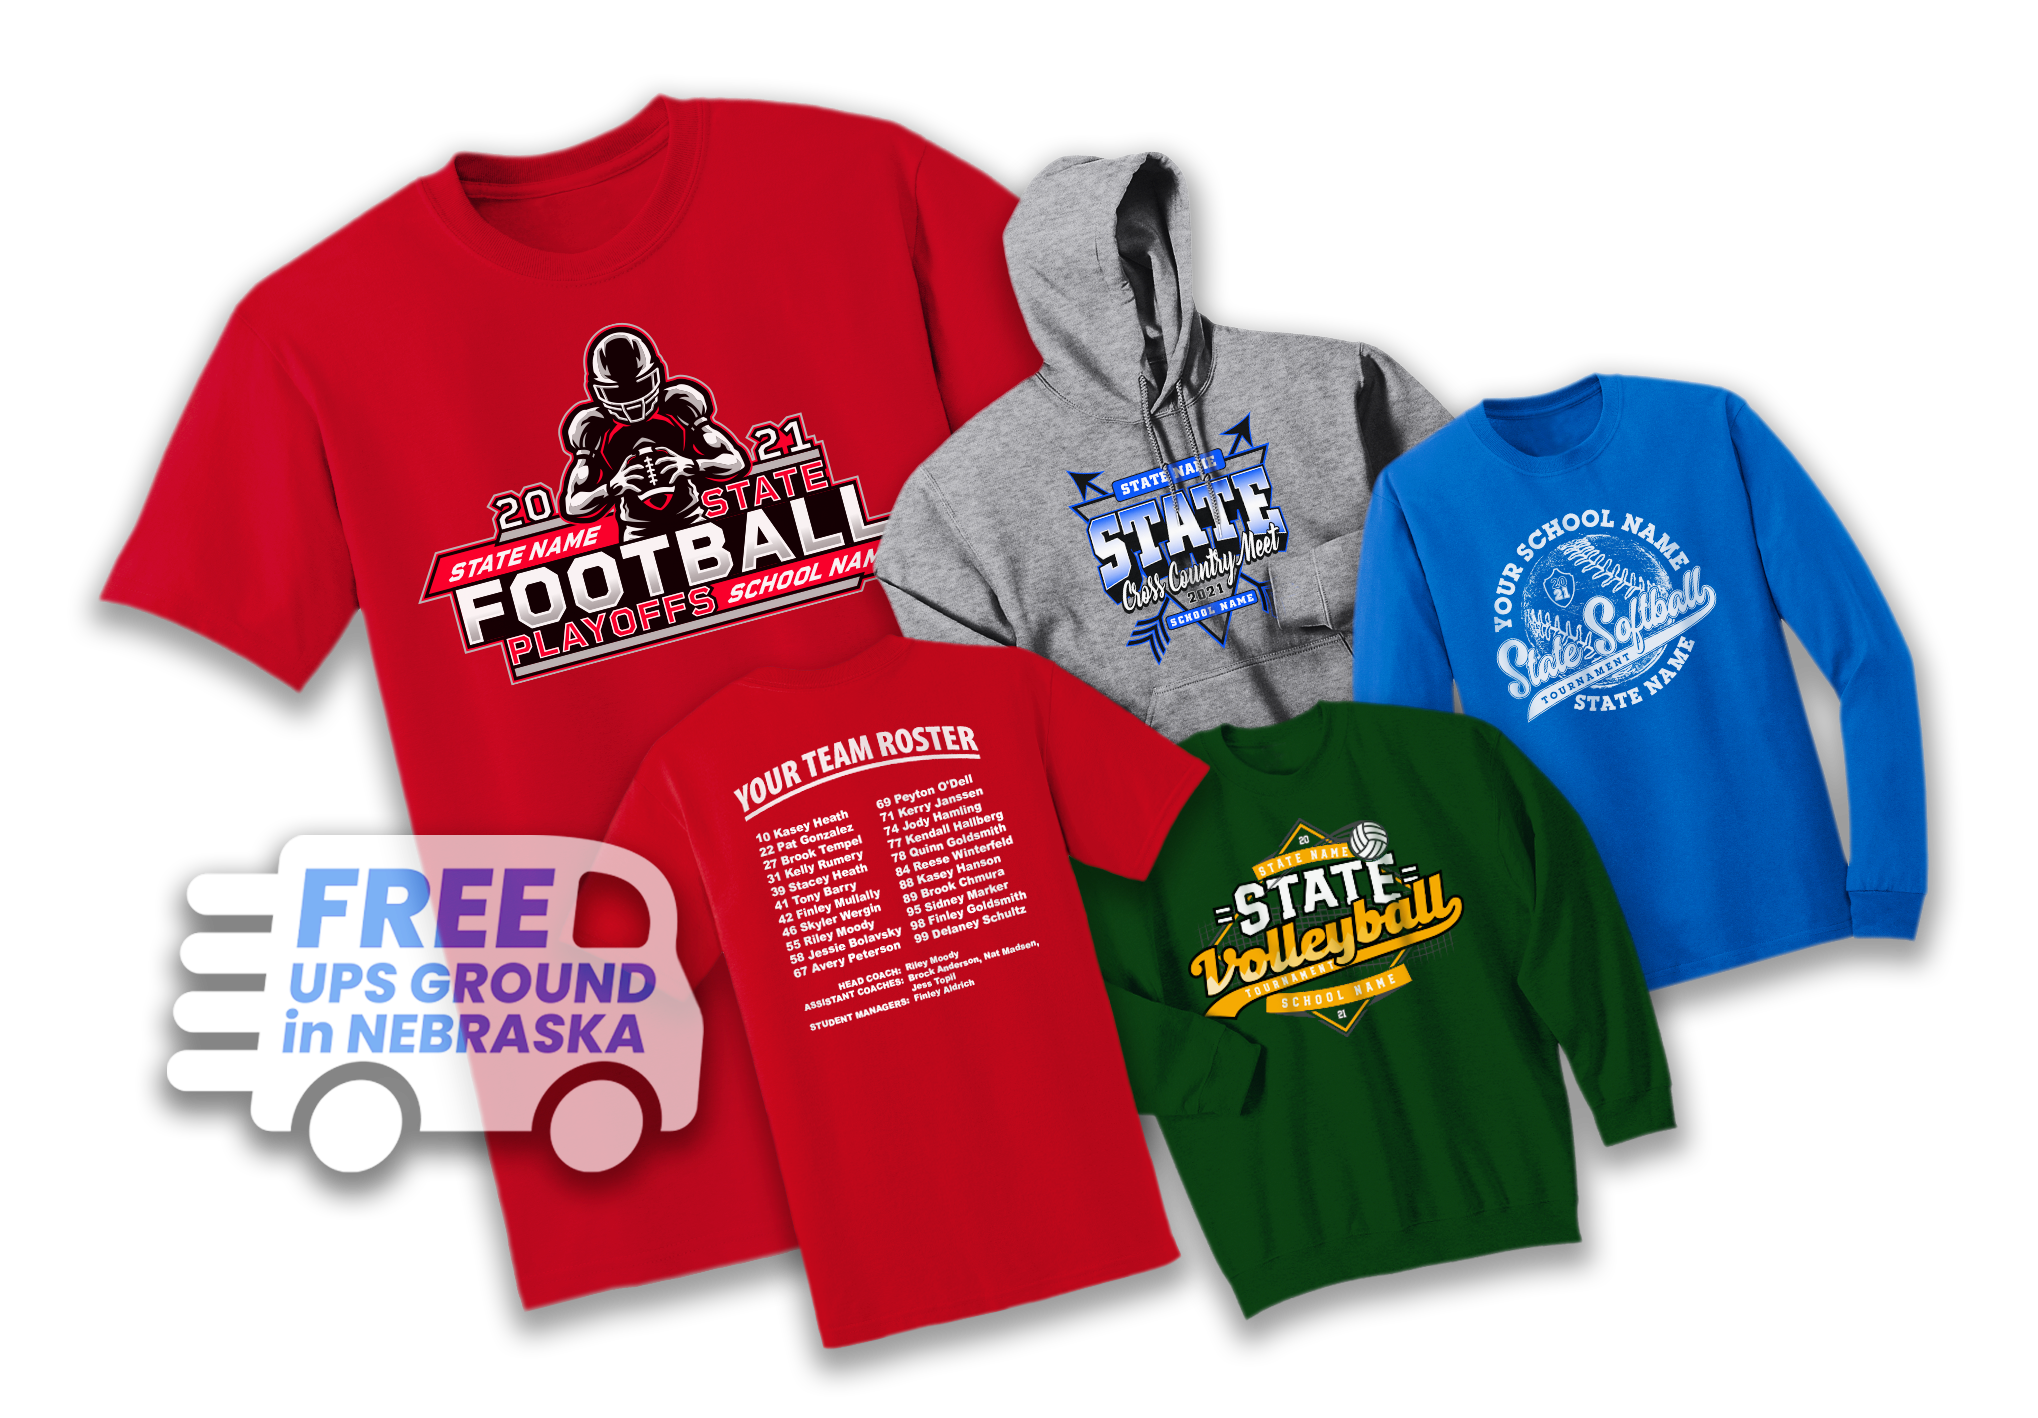 State Baseball and State Track and Field T-shirts